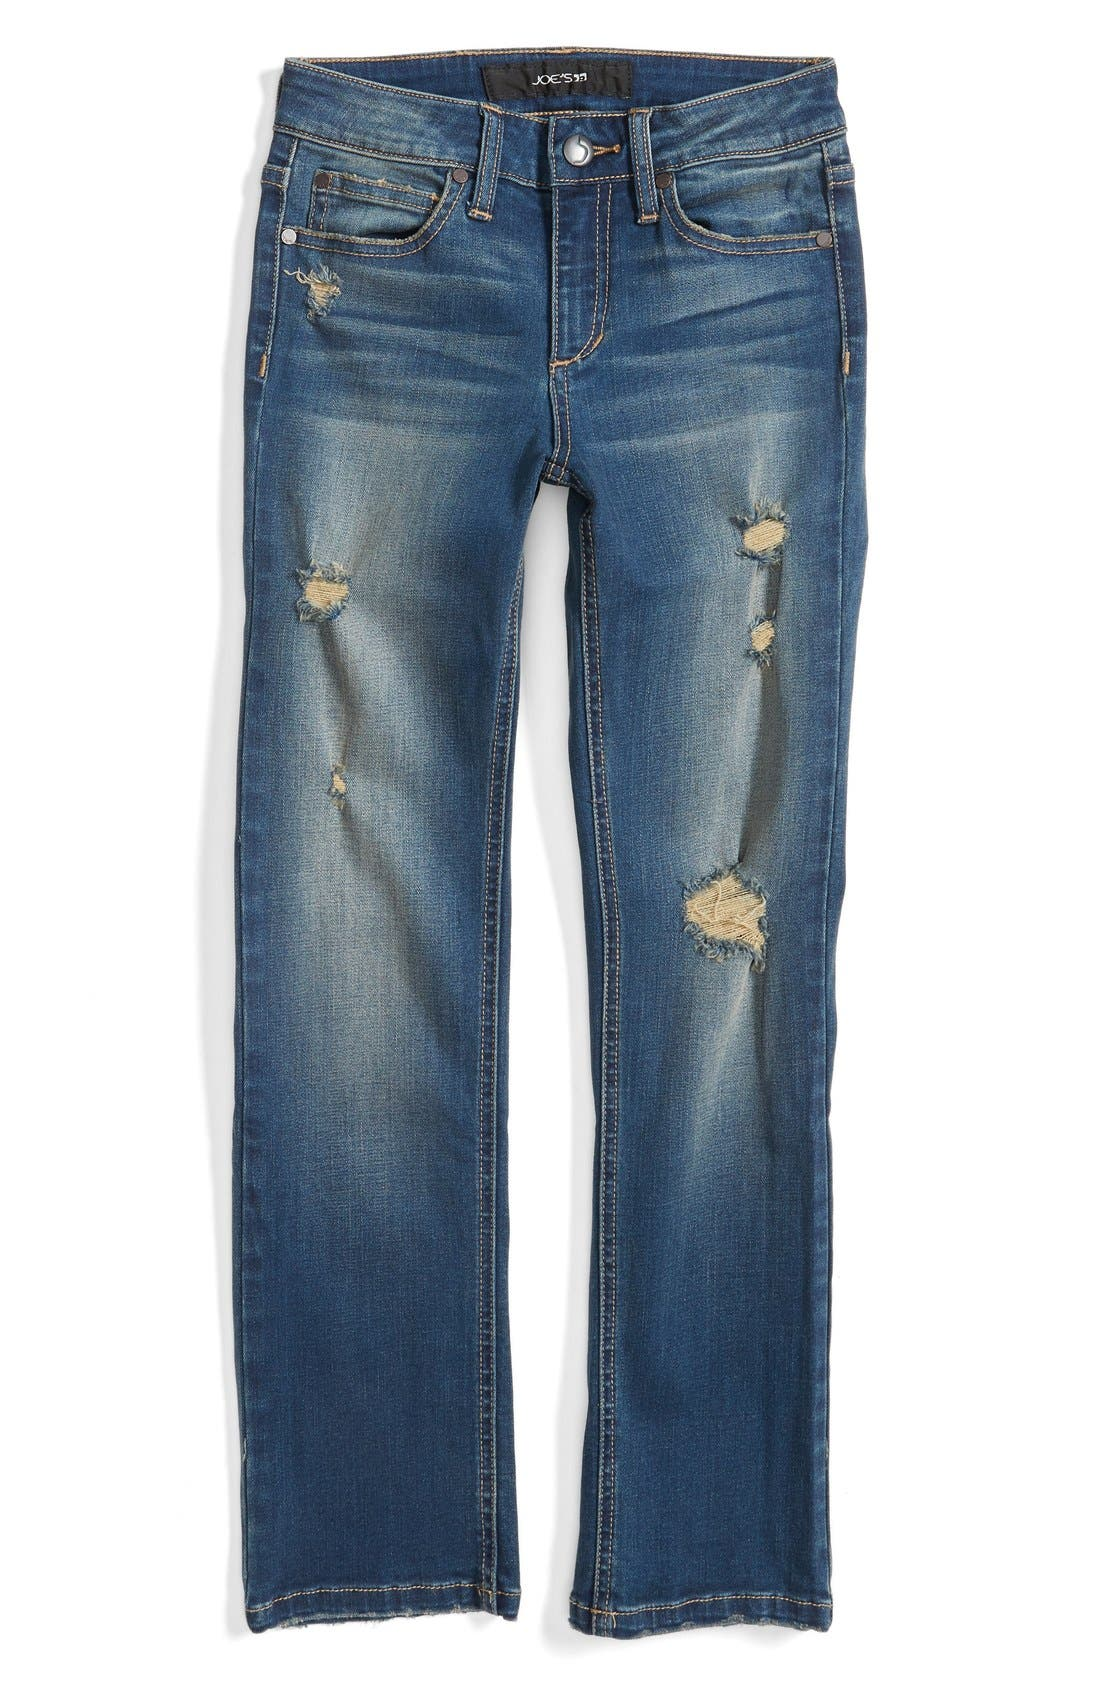 JOE'S 'Brixton Sandro' Distressed Straight Leg Jeans